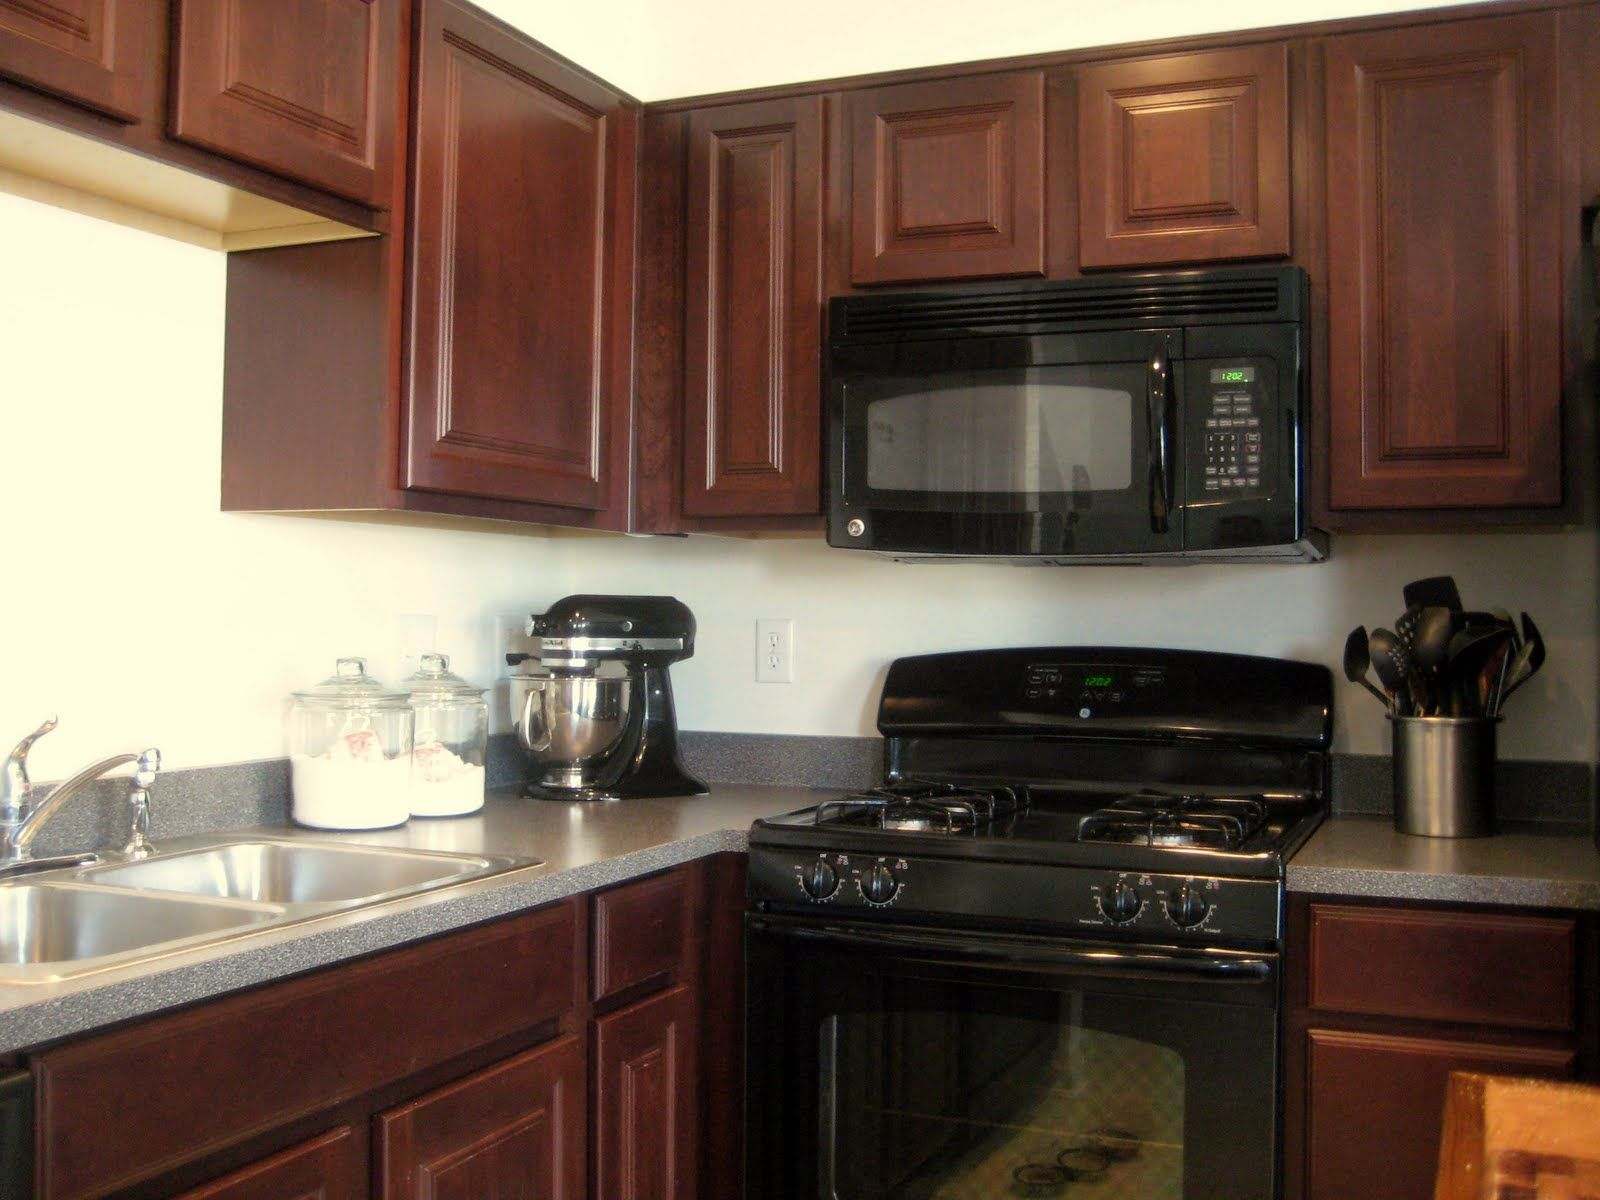 I like this look a lot! Black appliances, cherry